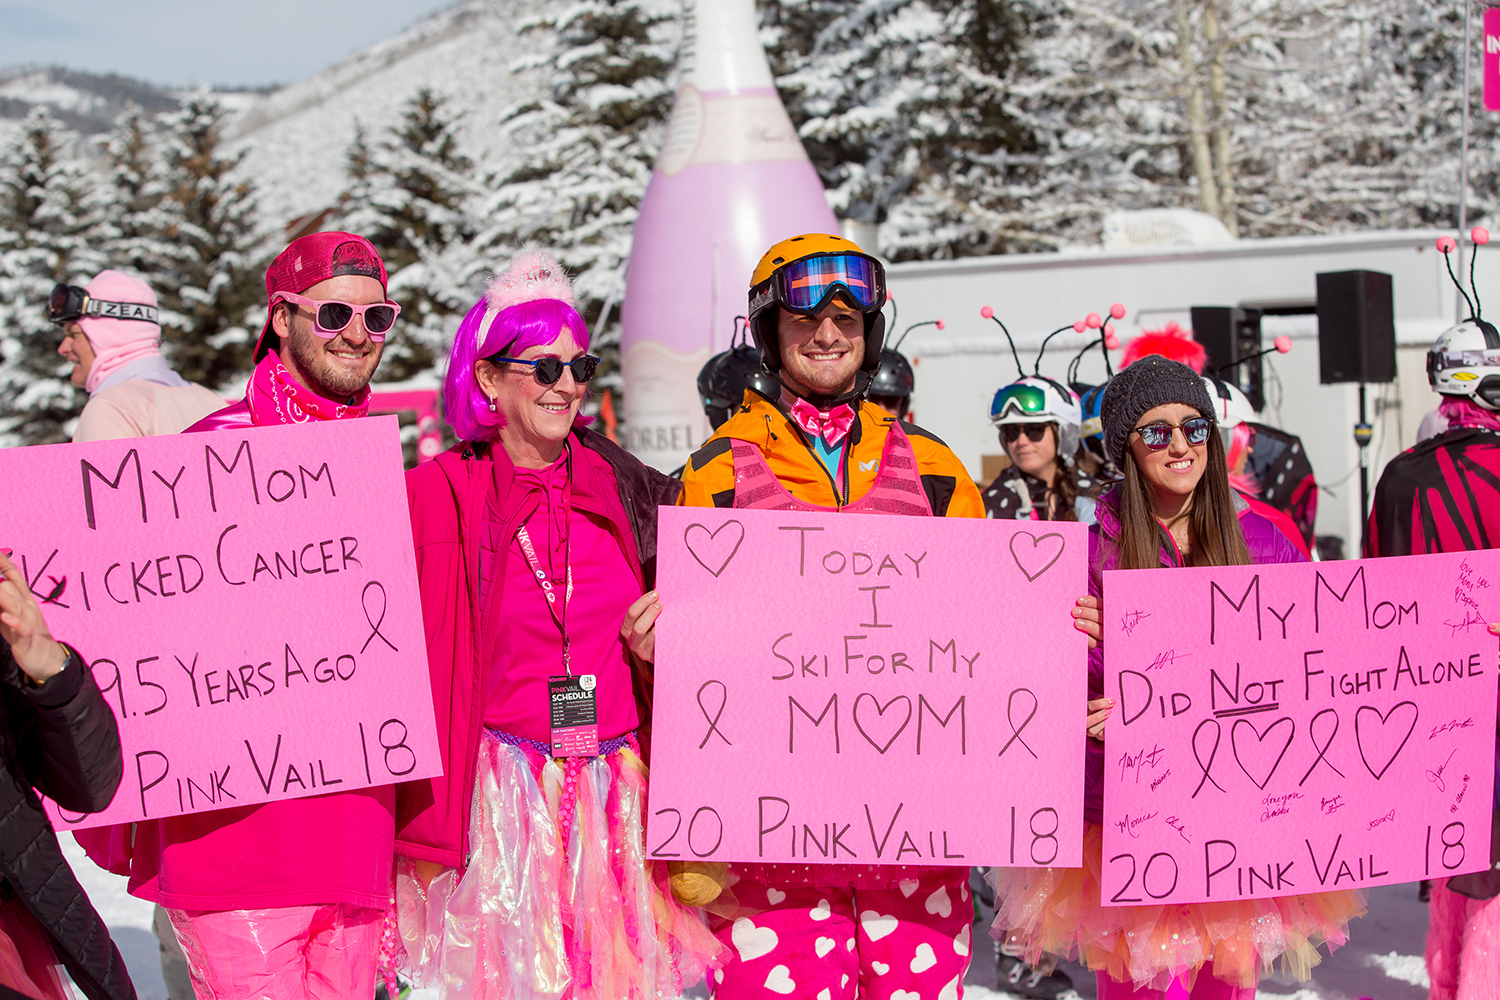 Thanks for supporting Pink Vail